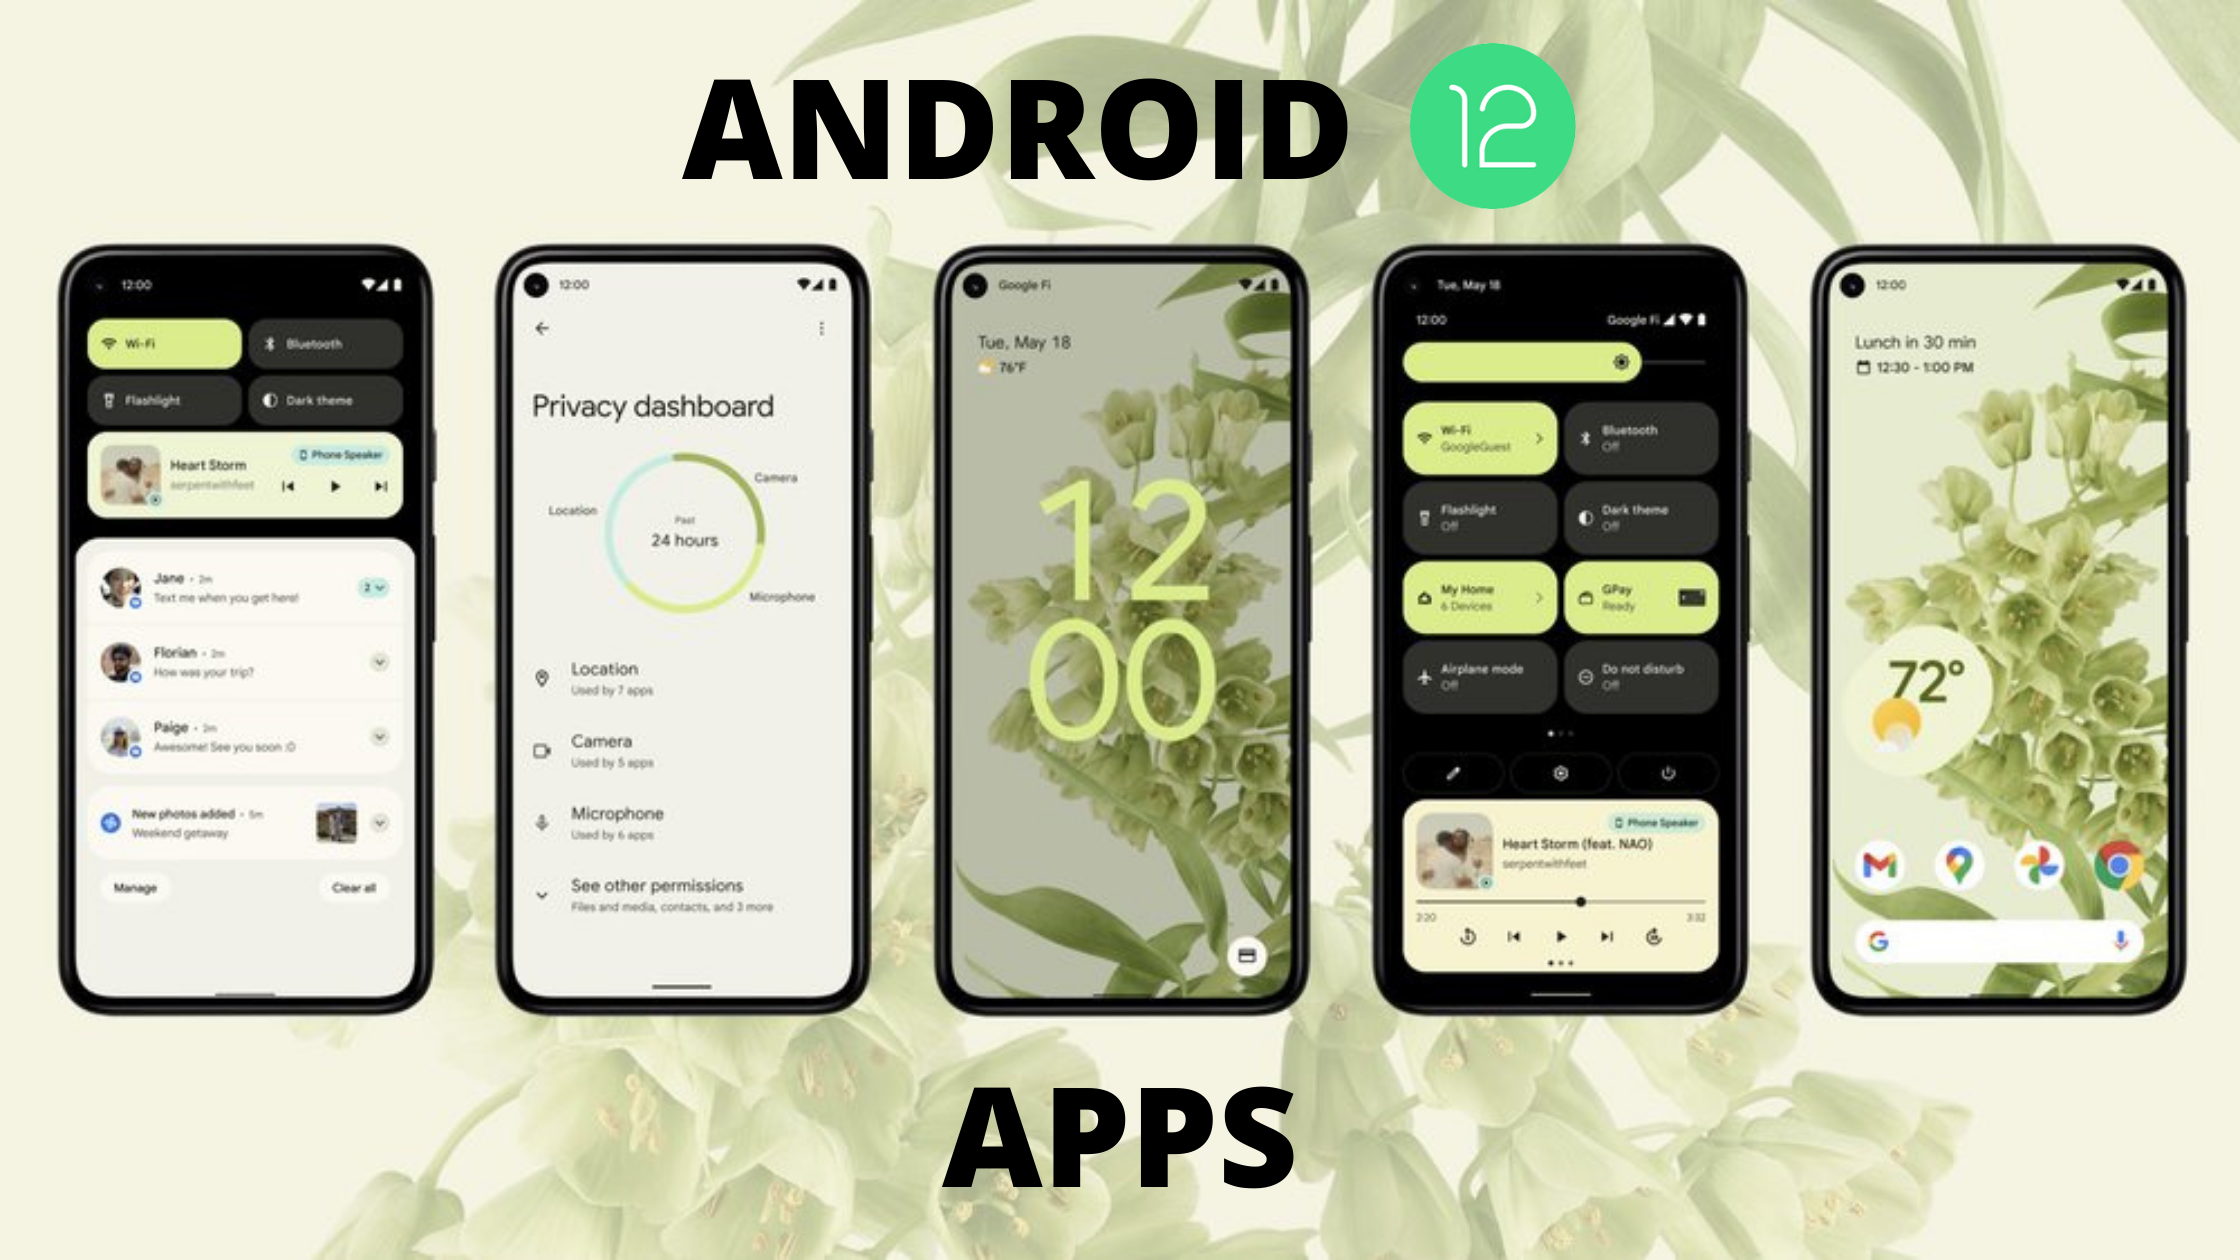 Android 12 Apps for any Android Smartphone: Download them!!